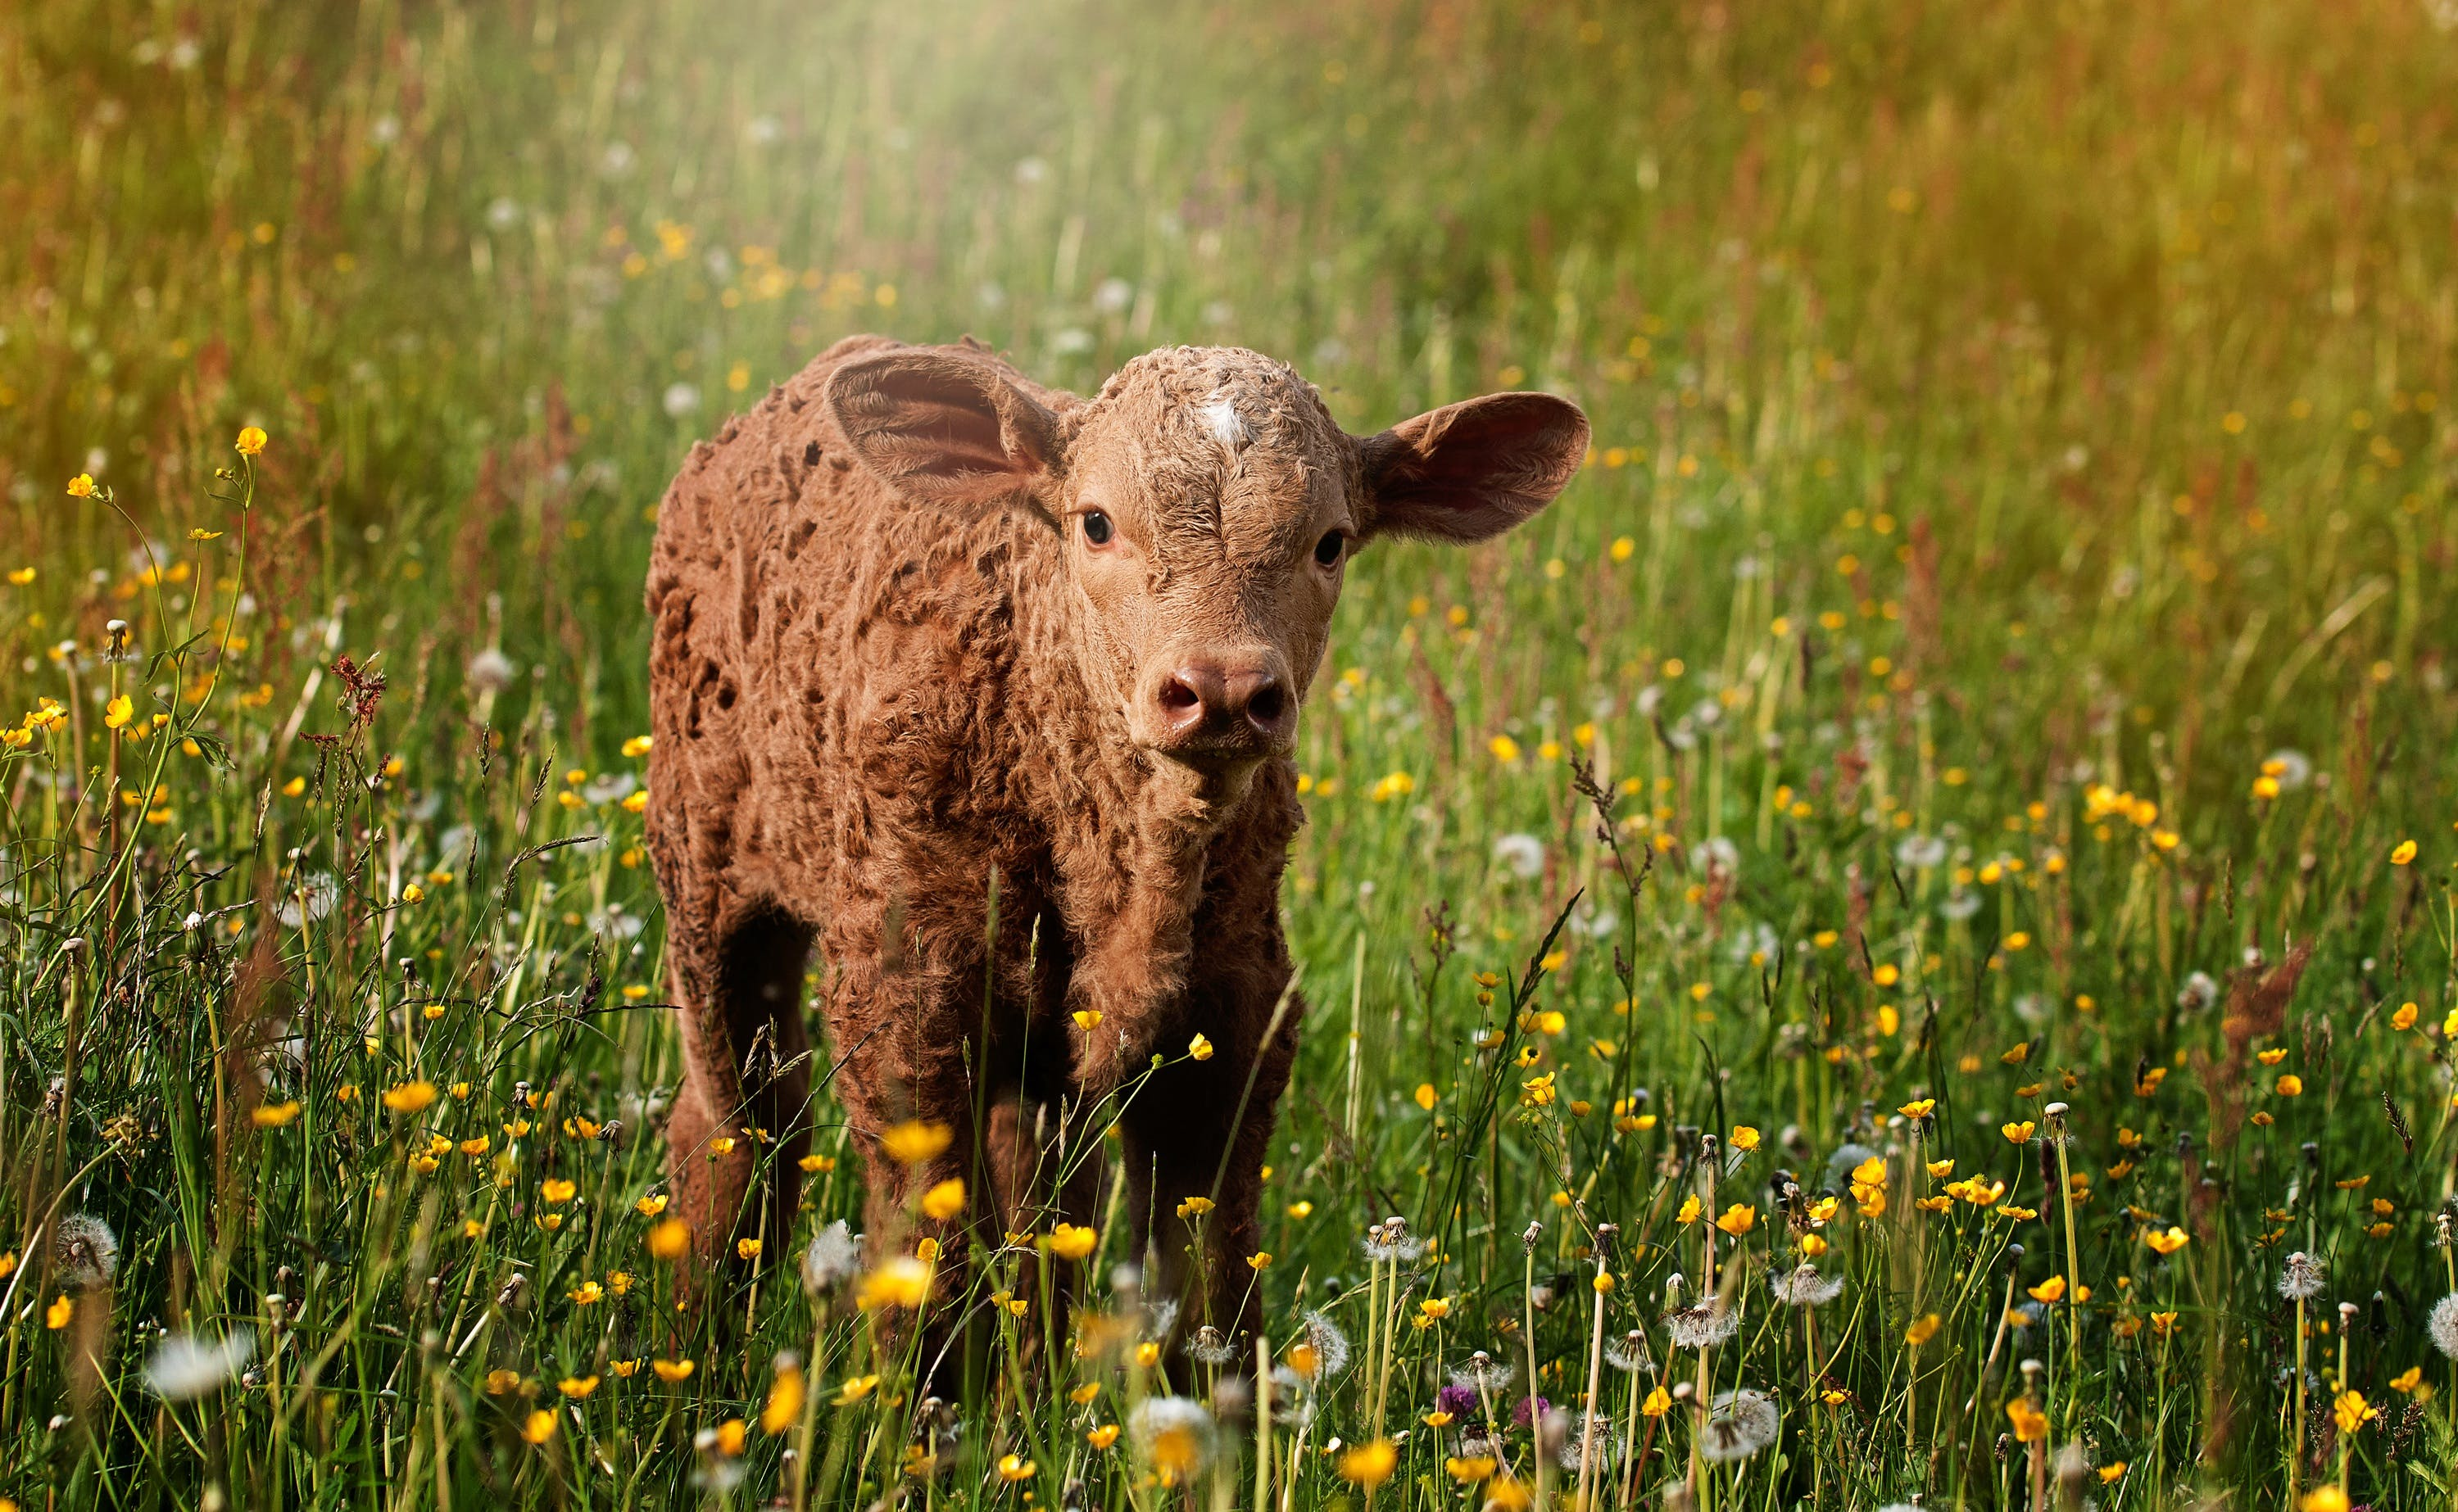 Brown Sheep on Grass Field